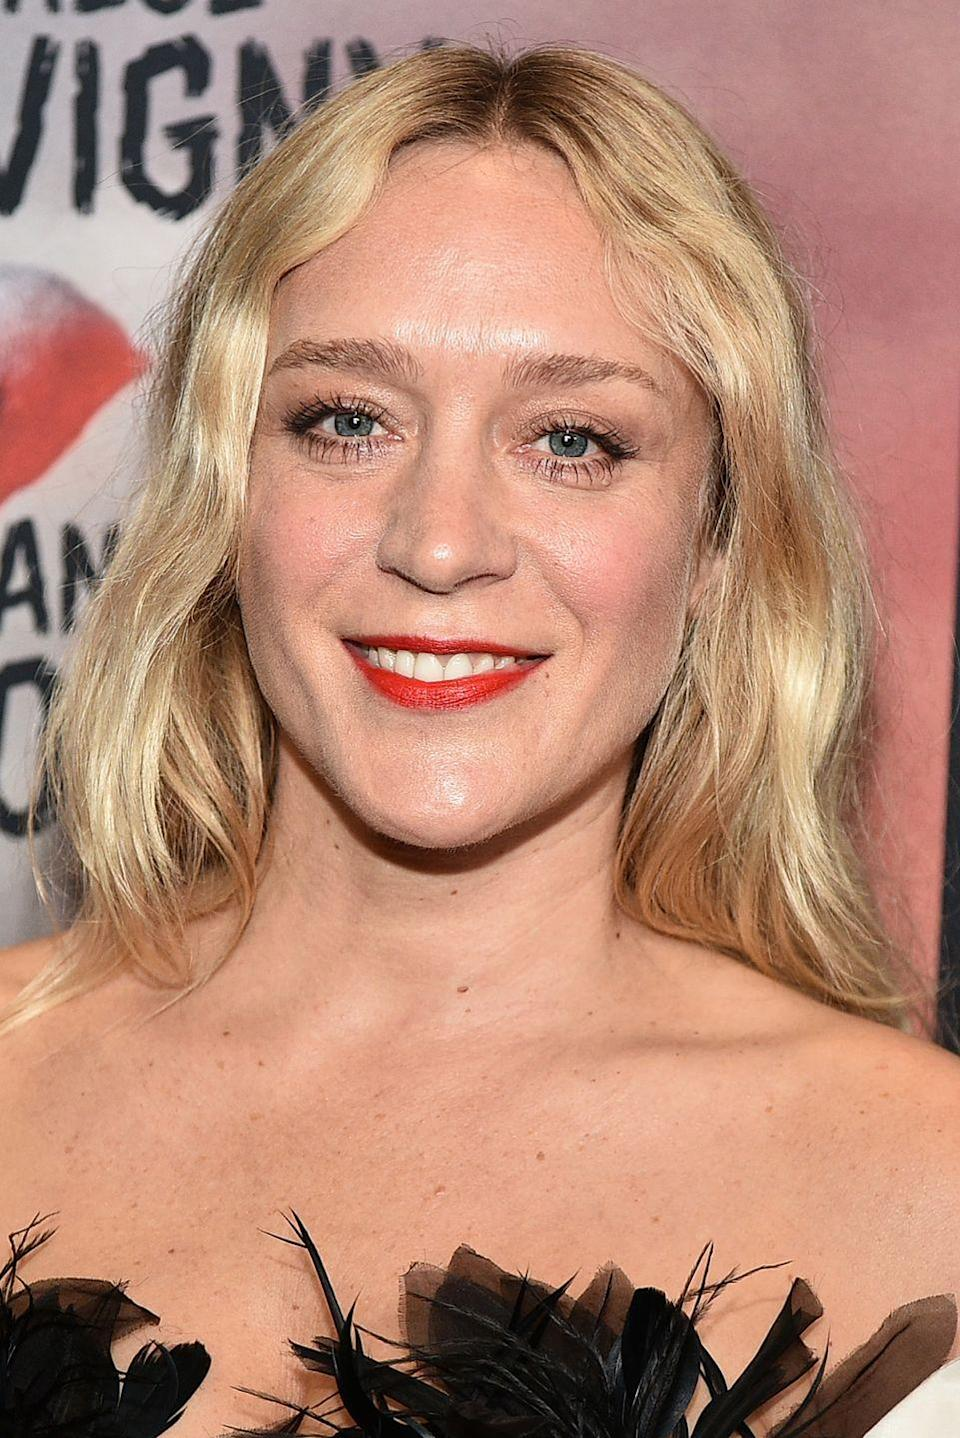 "<p>In an interview with <a href=""https://intothegloss.com/2019/08/chloe-sevigny-regime-de-fleurs-interview/"" rel=""nofollow noopener"" target=""_blank"" data-ylk=""slk:Into The Gloss"" class=""link rapid-noclick-resp"">Into The Gloss</a>, Chloë Sevigny recommended her dermatologist <a href=""https://go.redirectingat.com?id=127X1599956&url=https%3A%2F%2Fdrcolbert.com%2F&sref=https%3A%2F%2Fwww.harpersbazaar.com%2Fuk%2Fbeauty%2Fskincare%2Fg29572102%2Fcelebrities-who-have-had-plastic-surgery%2F"" rel=""nofollow noopener"" target=""_blank"" data-ylk=""slk:Dr Colbert"" class=""link rapid-noclick-resp"">Dr Colbert </a>who she goes to every six months.</p><p>""I get all different kinds of treatments from him—Ulthera, Botox. I think Botox is good! It's just a preventative for my 11 lines, but also he's very conservative because I'm an actress."" </p>"